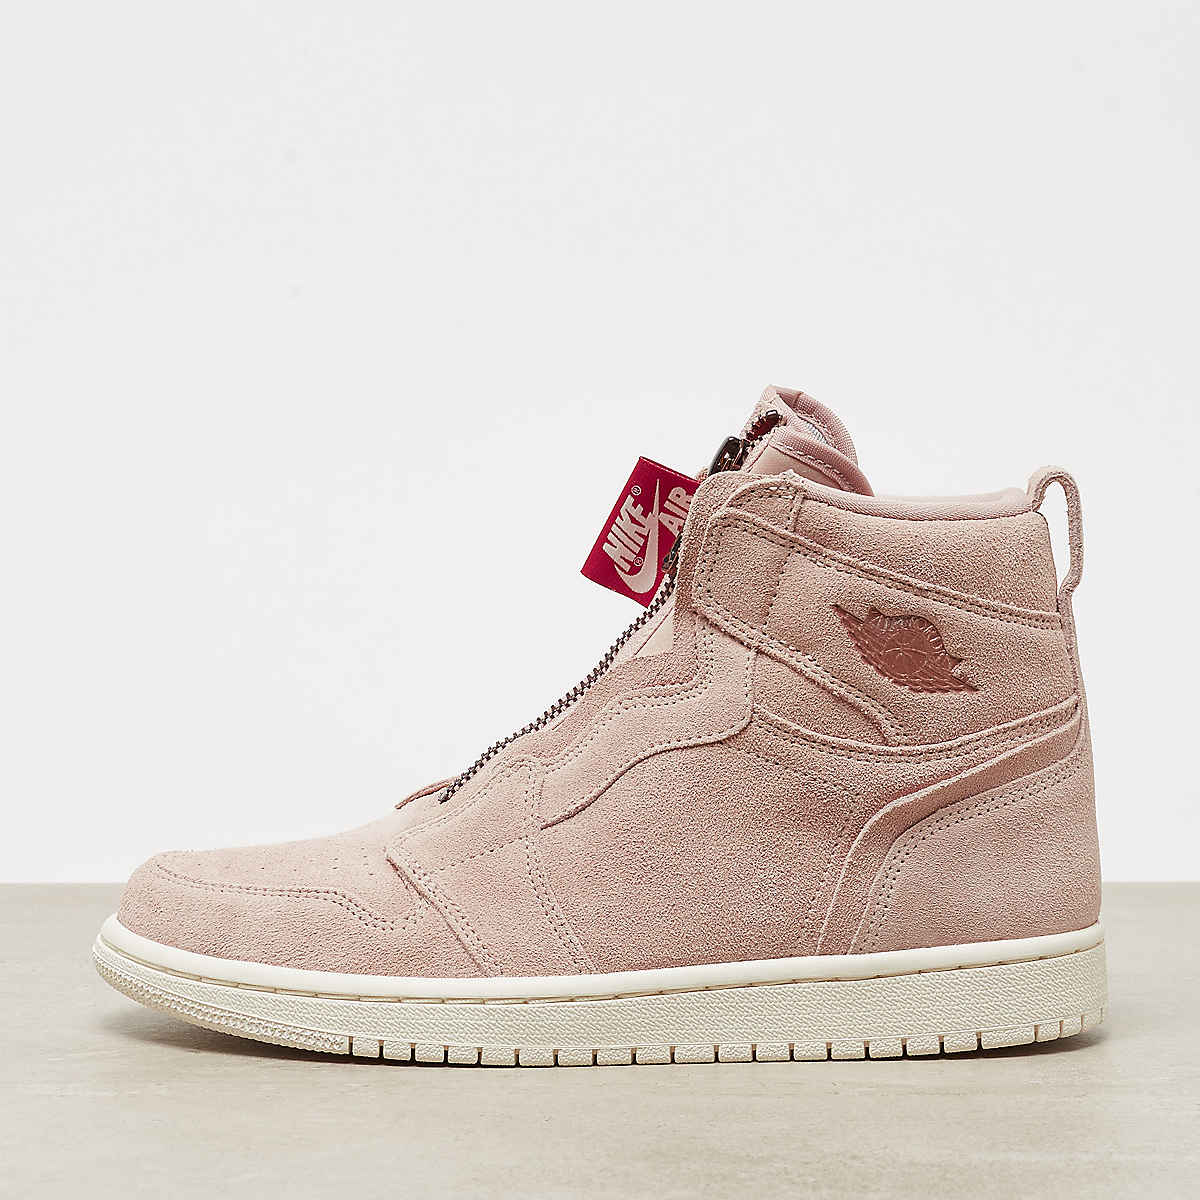 wholesale dealer b0e4a 86b57 Air Jordan 1 High Zip